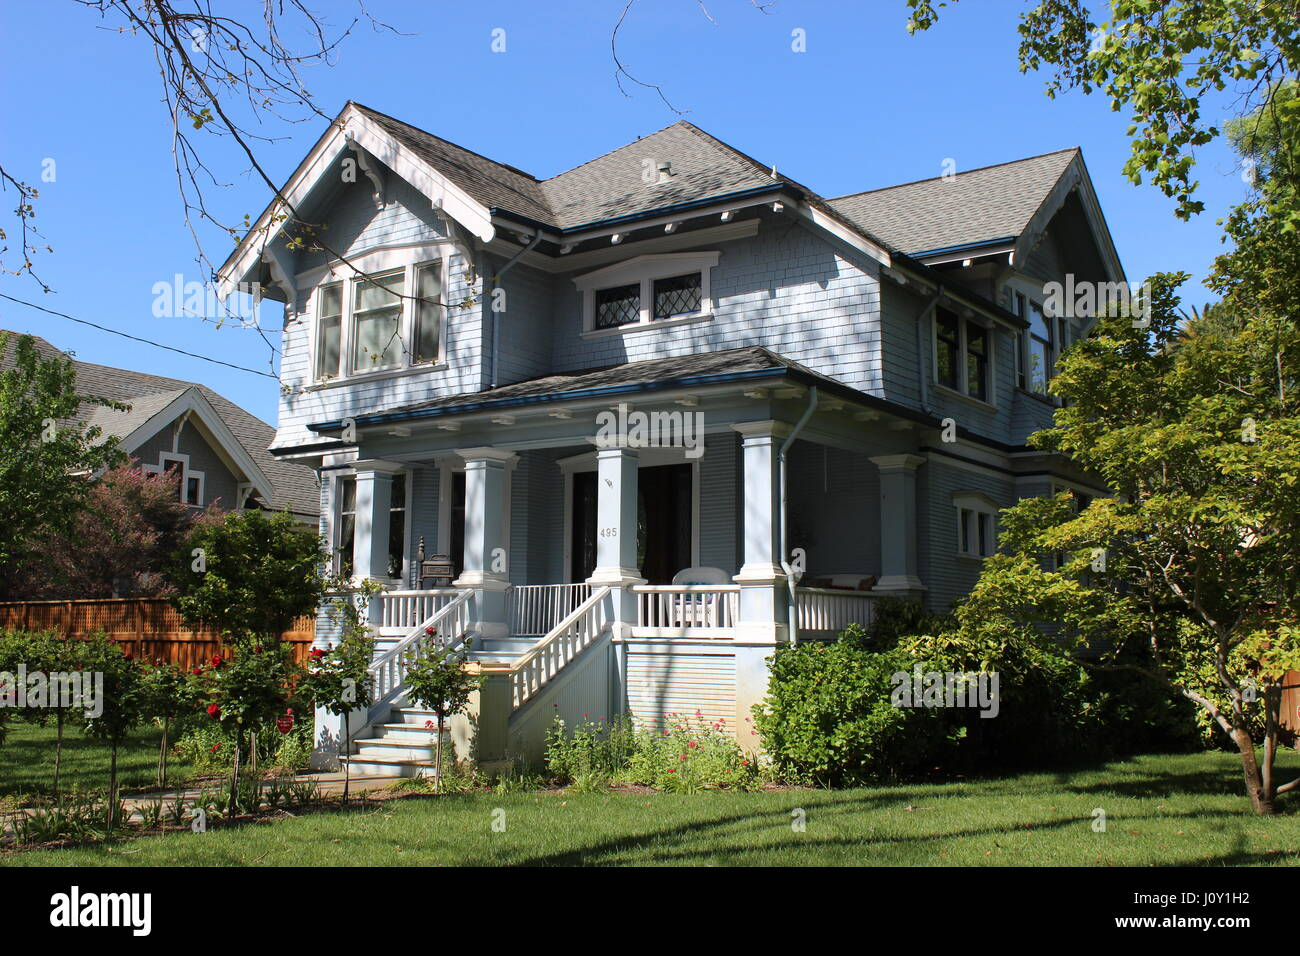 Edward G. Manasse House, Craftsman House built around 1905 in Napa, California - Stock Image